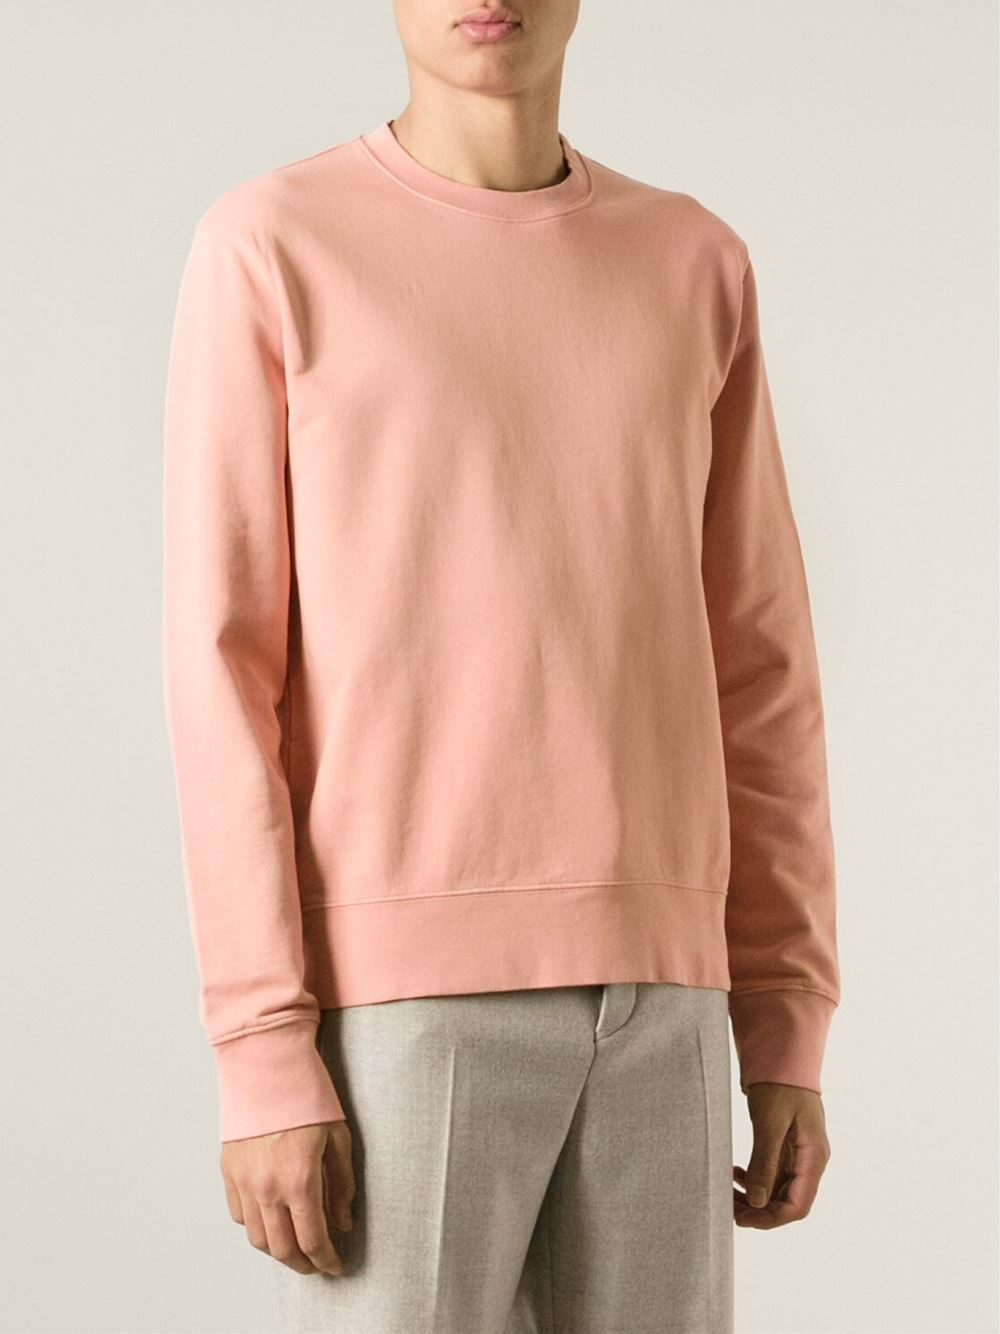 Lyst - Acne Studios Casey Cotton Sweatshirt in Pink for Men